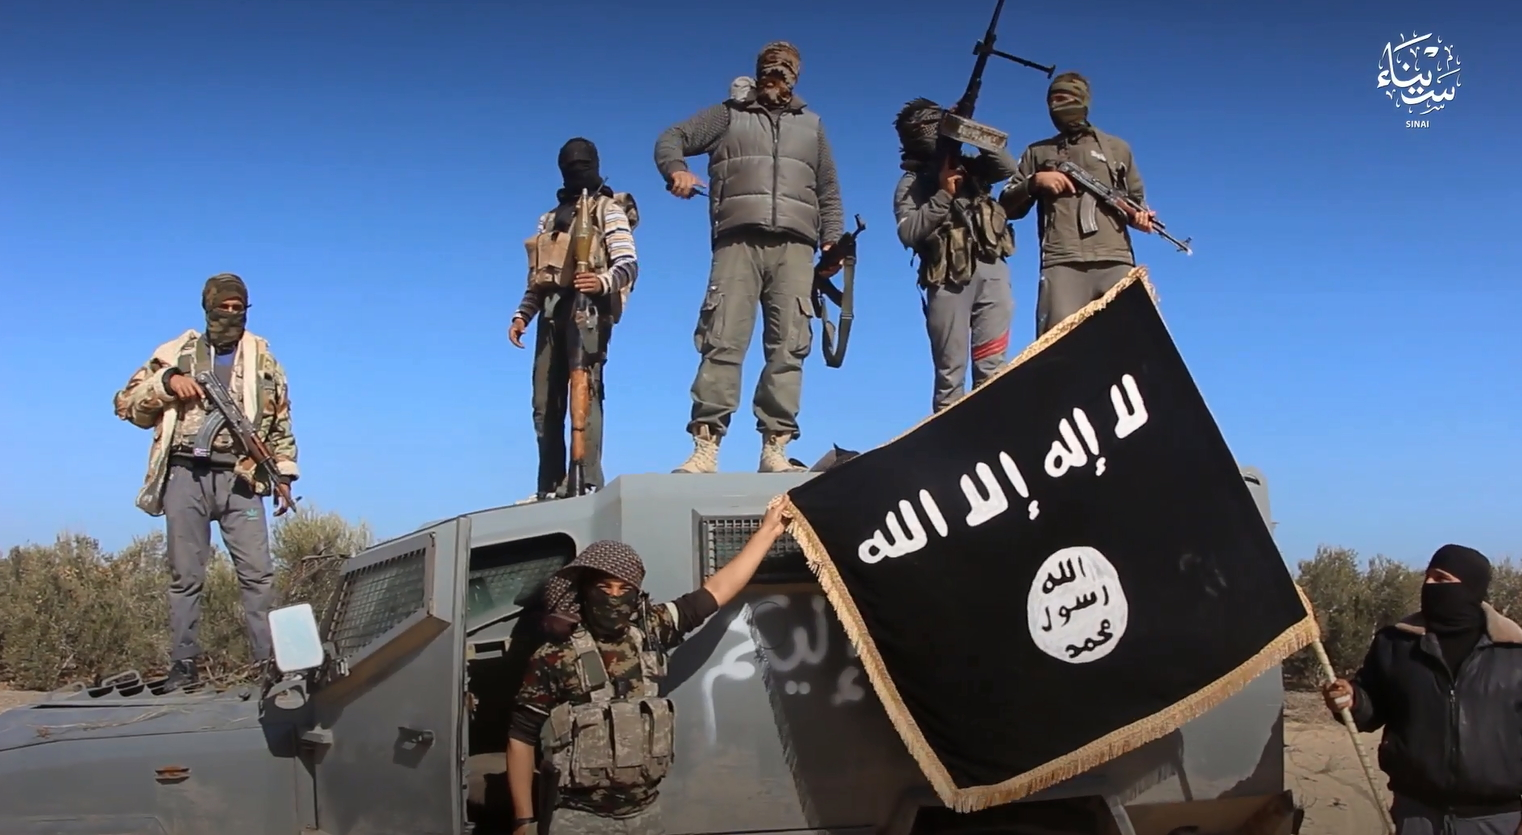 ISIS-Sinai Nasheeds And Poetry Shed Light On The Organization's Priorities